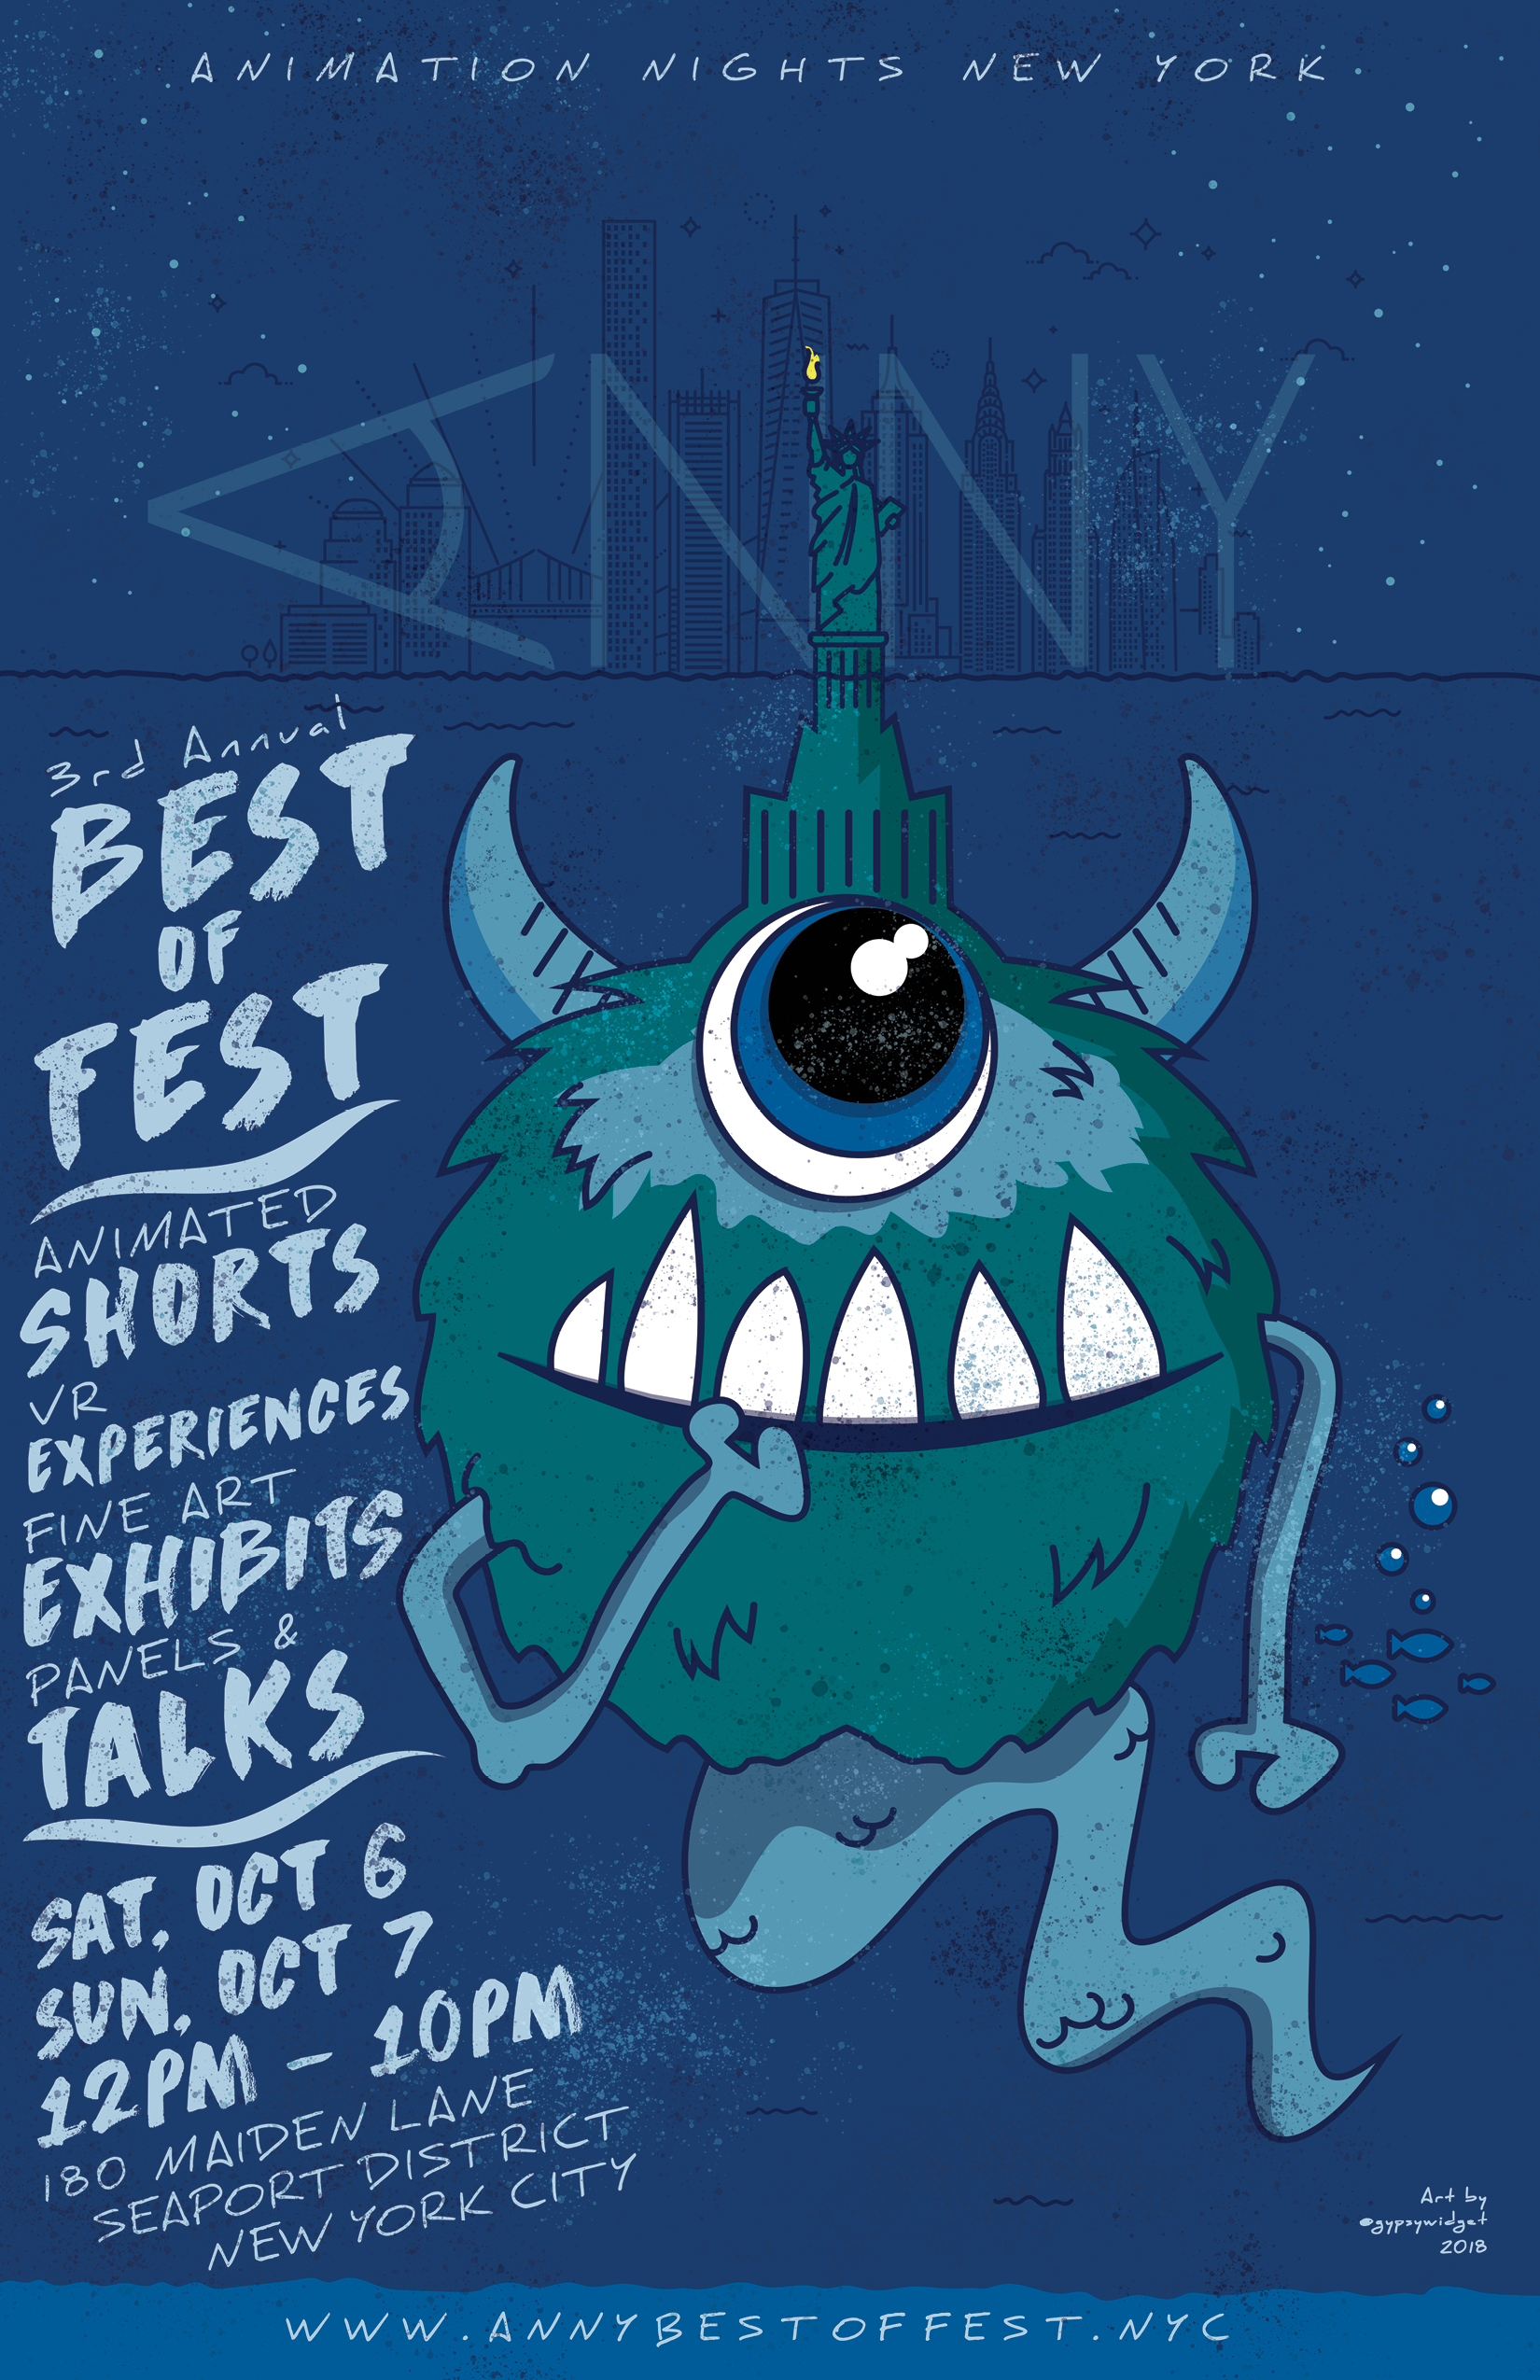 2018 ANNY Best of Fest, Oct 6-7 – Animation Nights New York